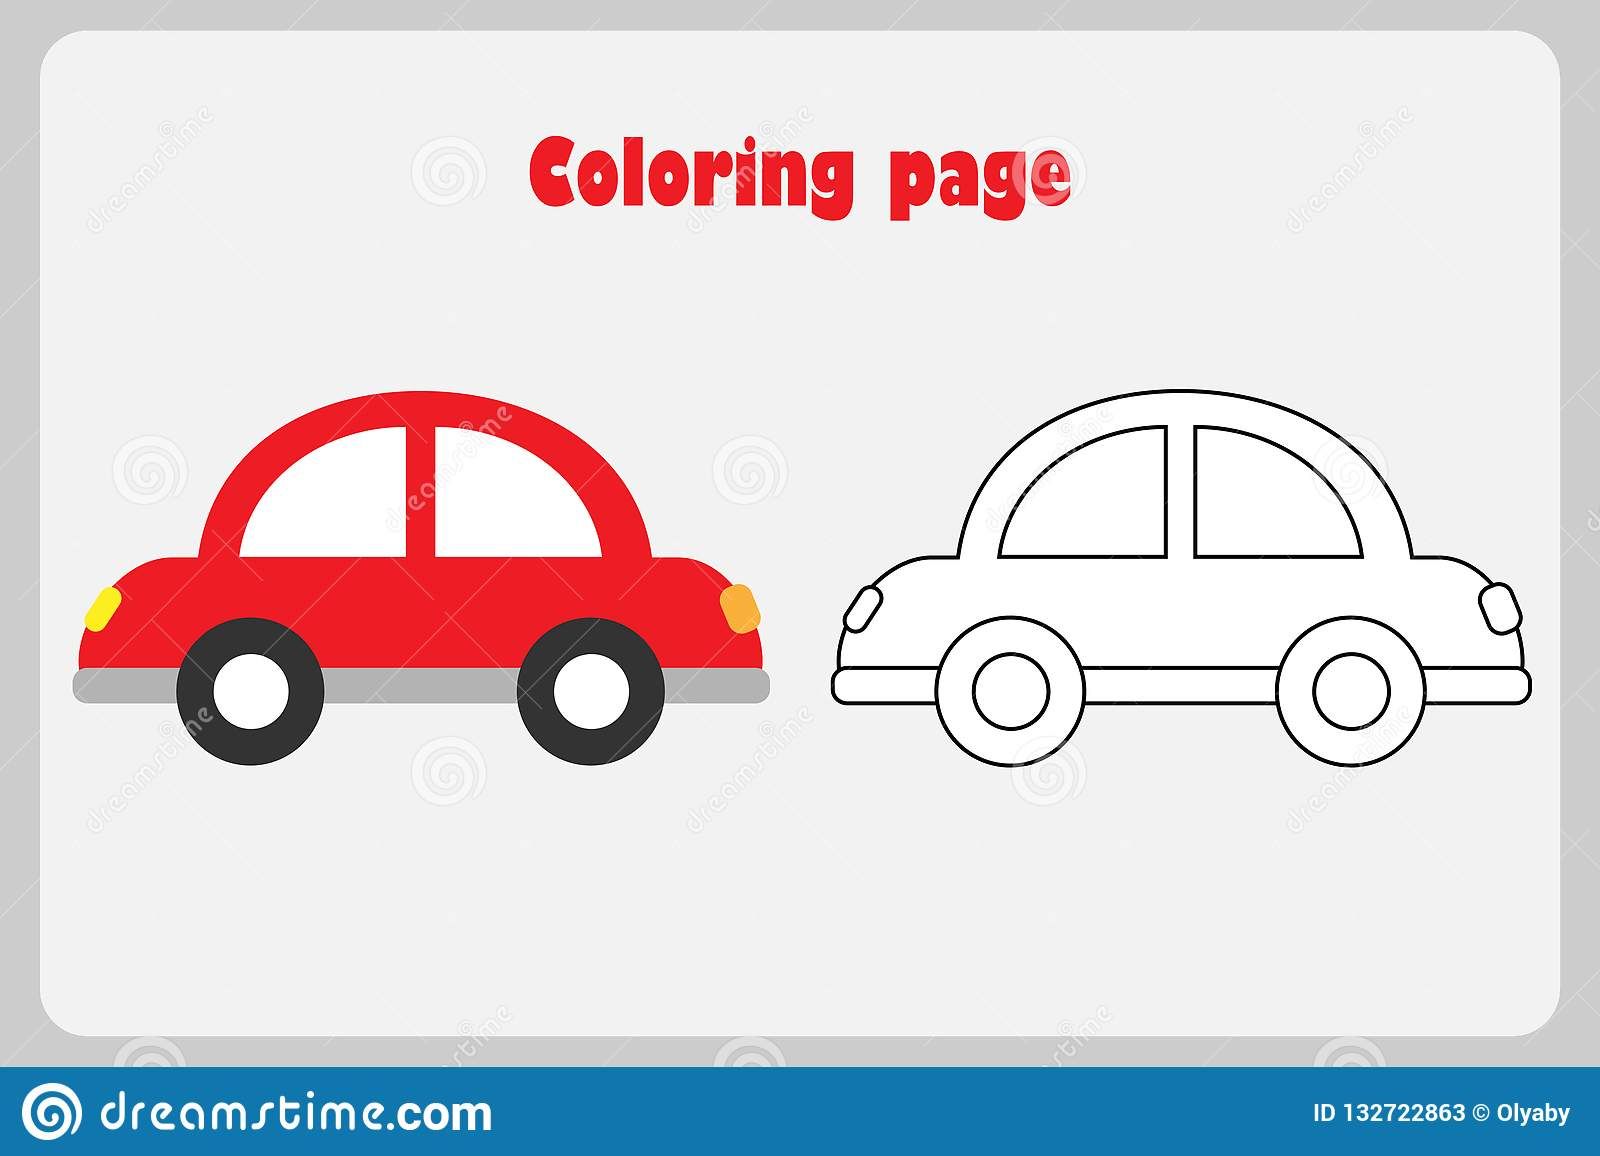 Car In Cartoon Style Coloring Page Education Paper Game For The Development Of Children Kids